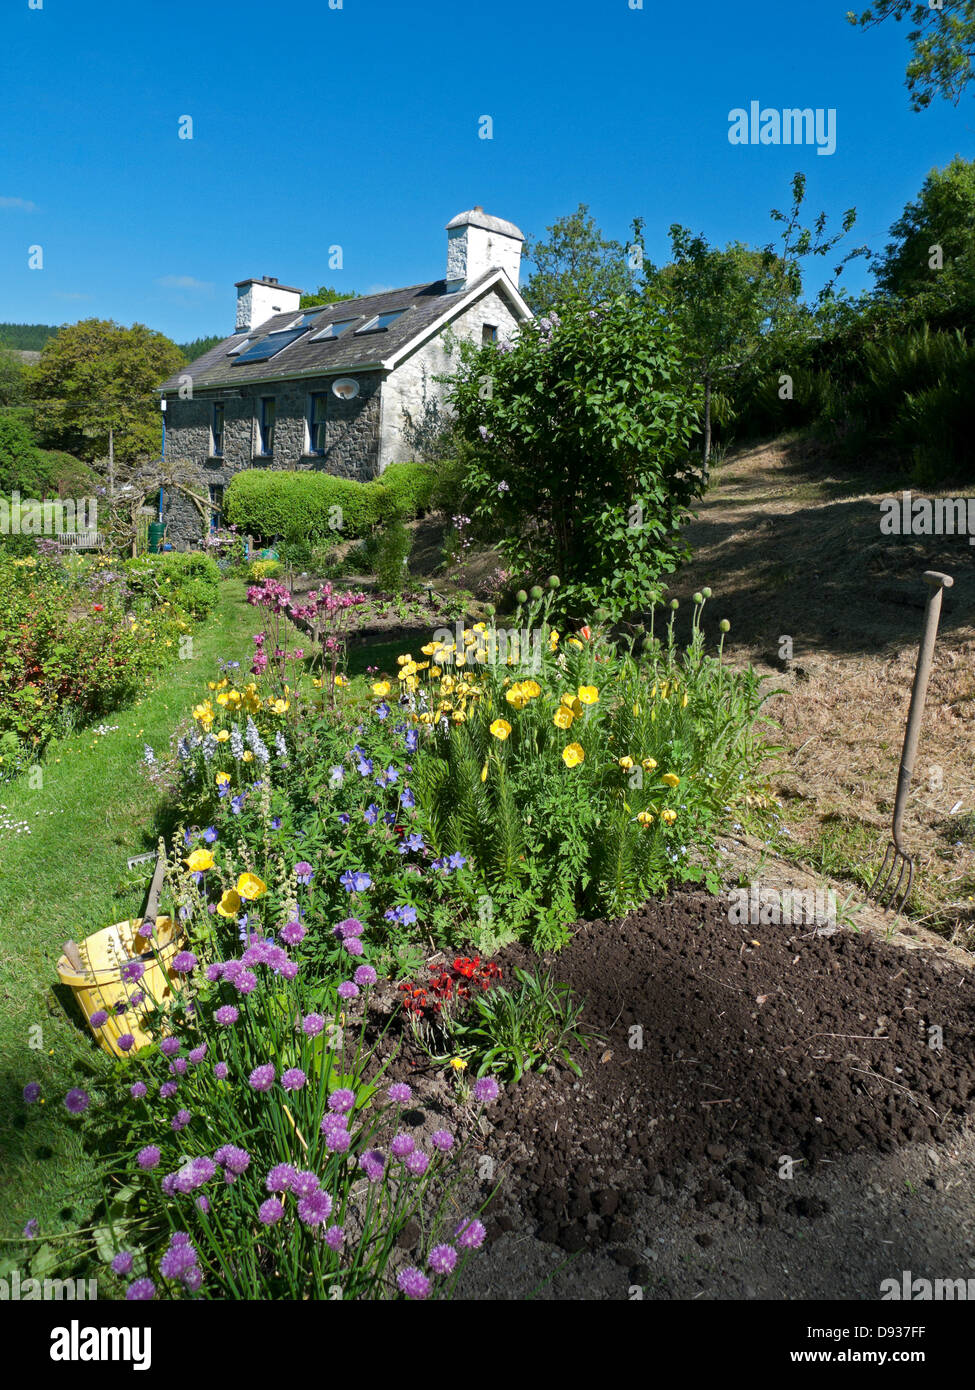 A house and flower garden with bare soil of seedbed ready for planting in summer in Carmarthenshire rural Wales - Stock Image